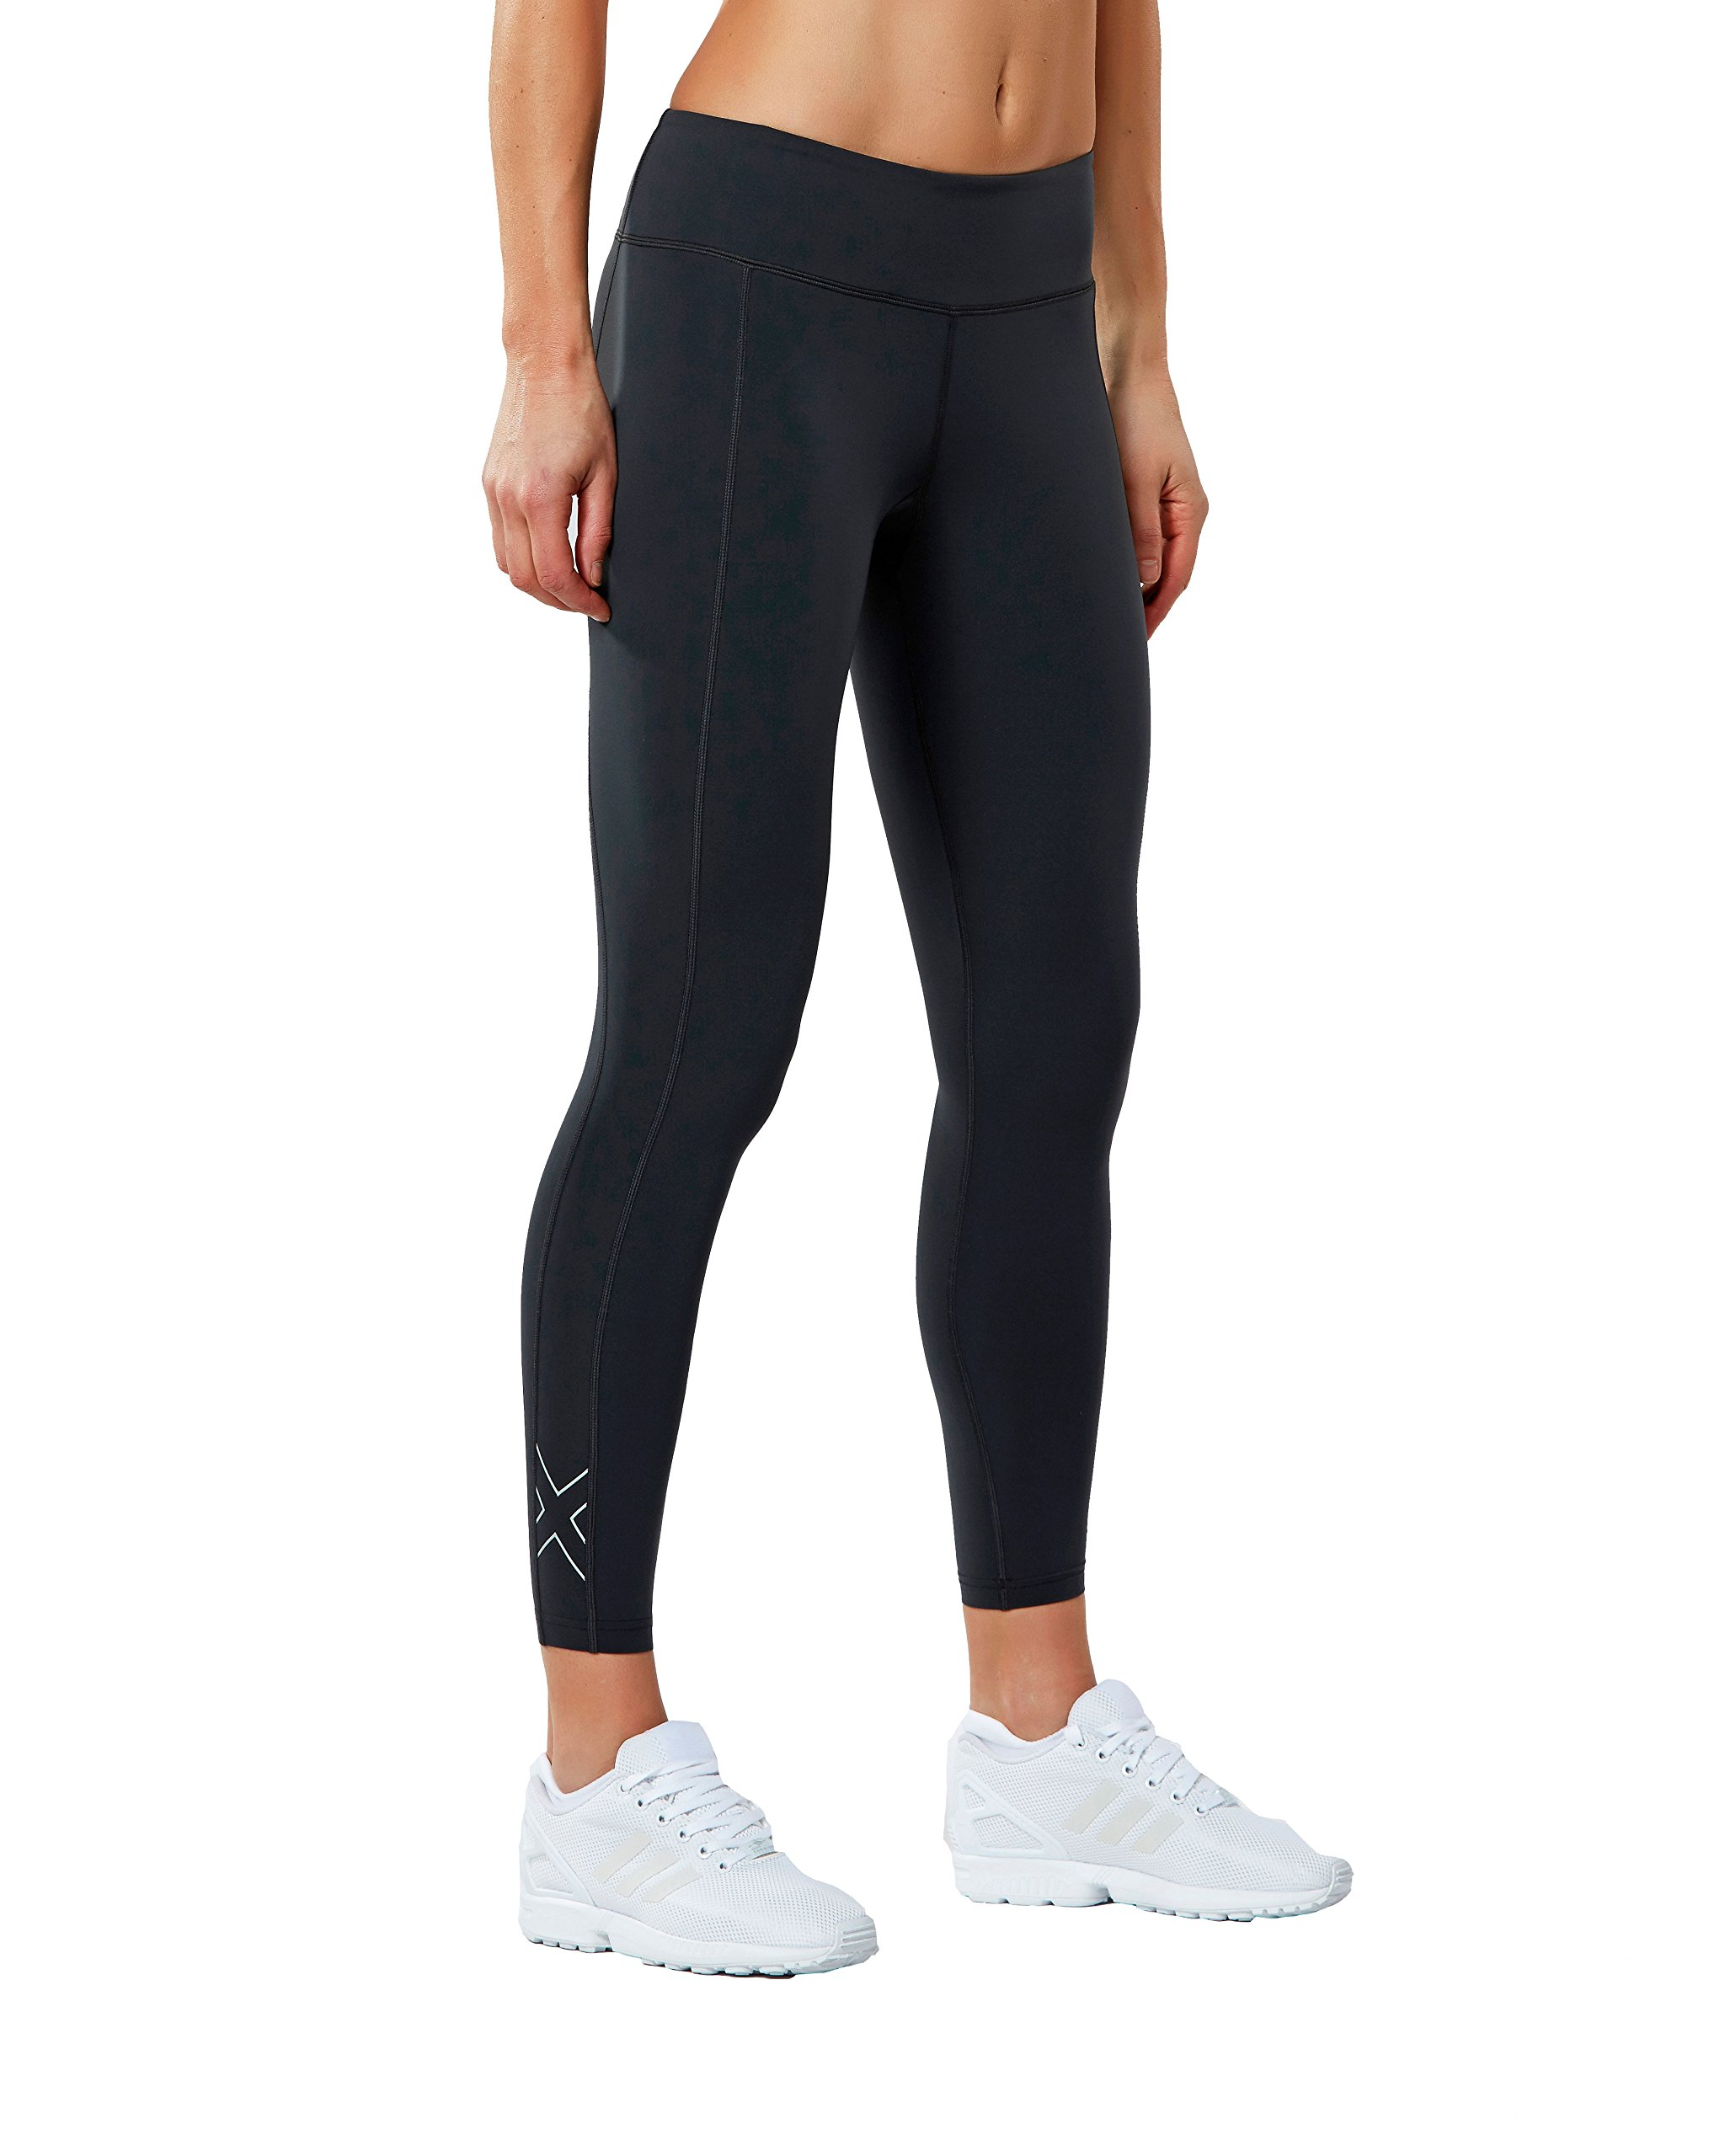 2XU Women's Fitness Compression Tights, Dark Charcoal/Silver, Medium/Tall by 2XU (Image #1)